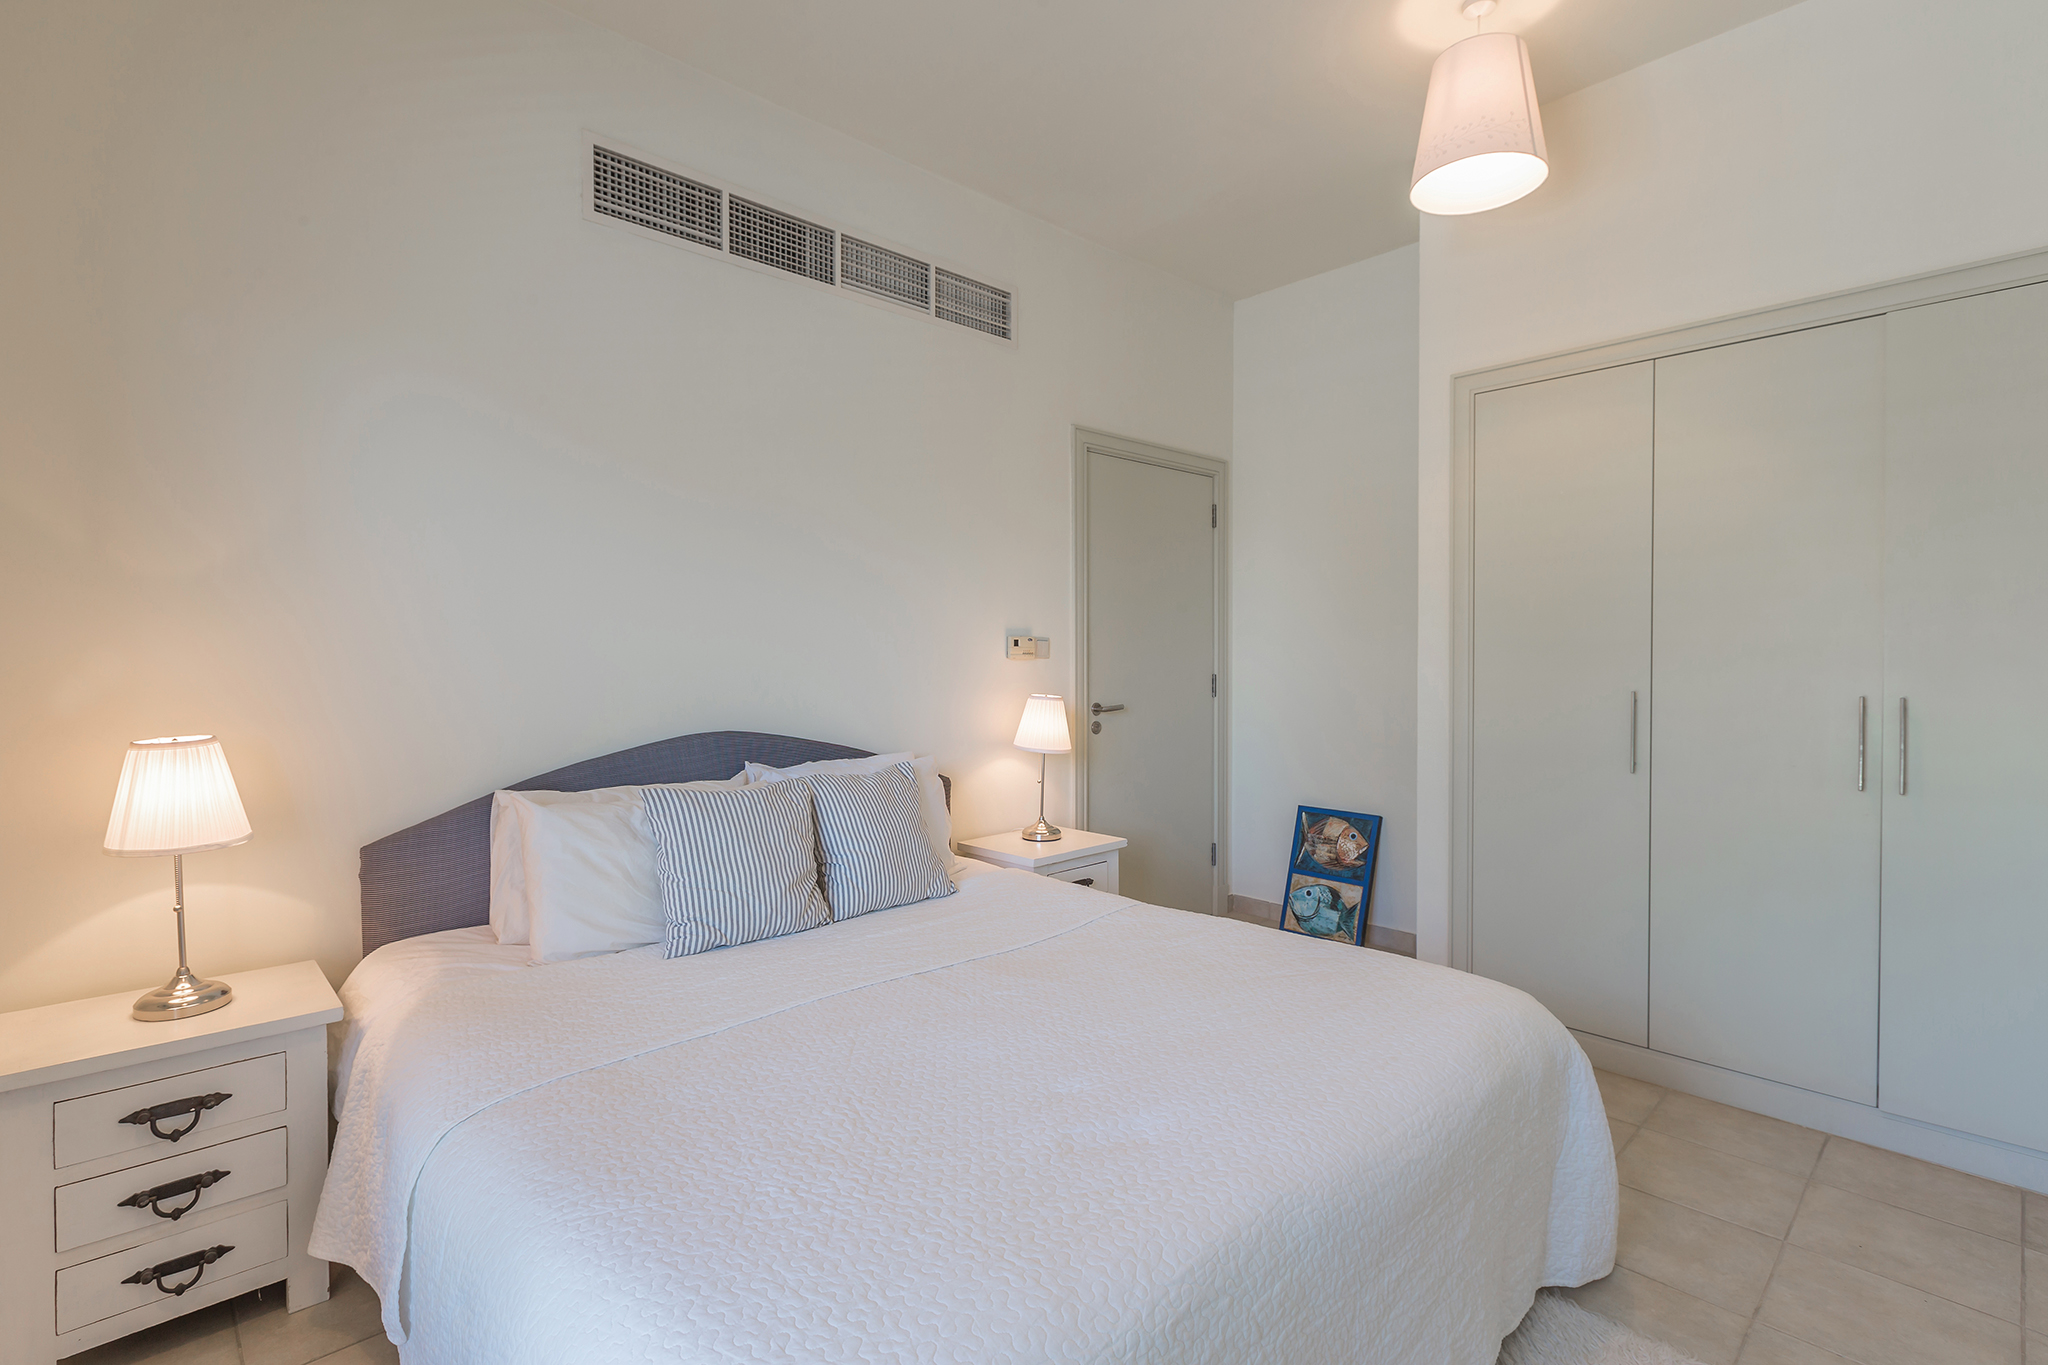 Guest's bedroom with comfortable king-sized bed